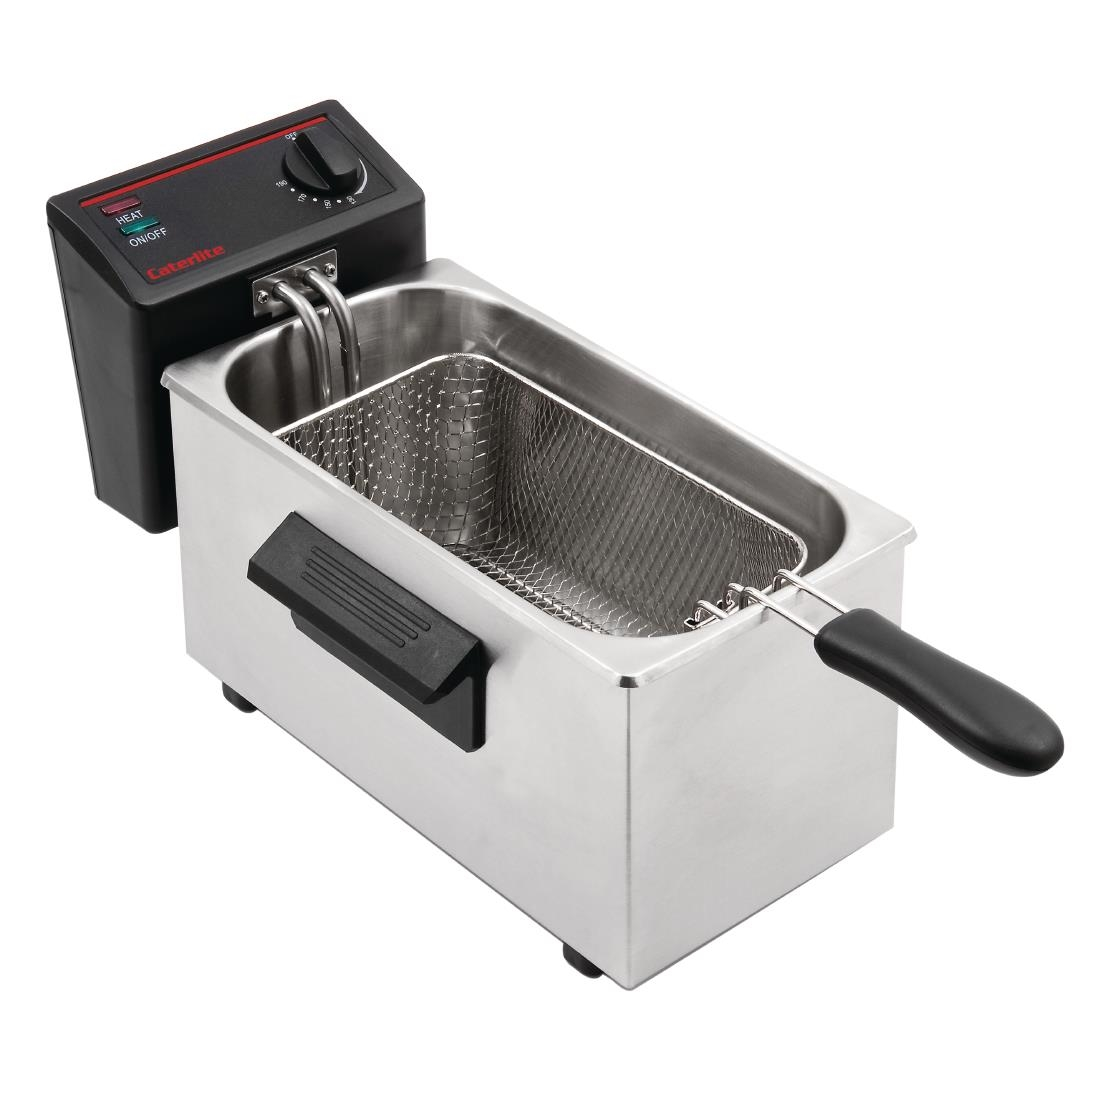 Caterlite Light Duty Single Tank Single Basket Countertop Electric Fryer 2kW